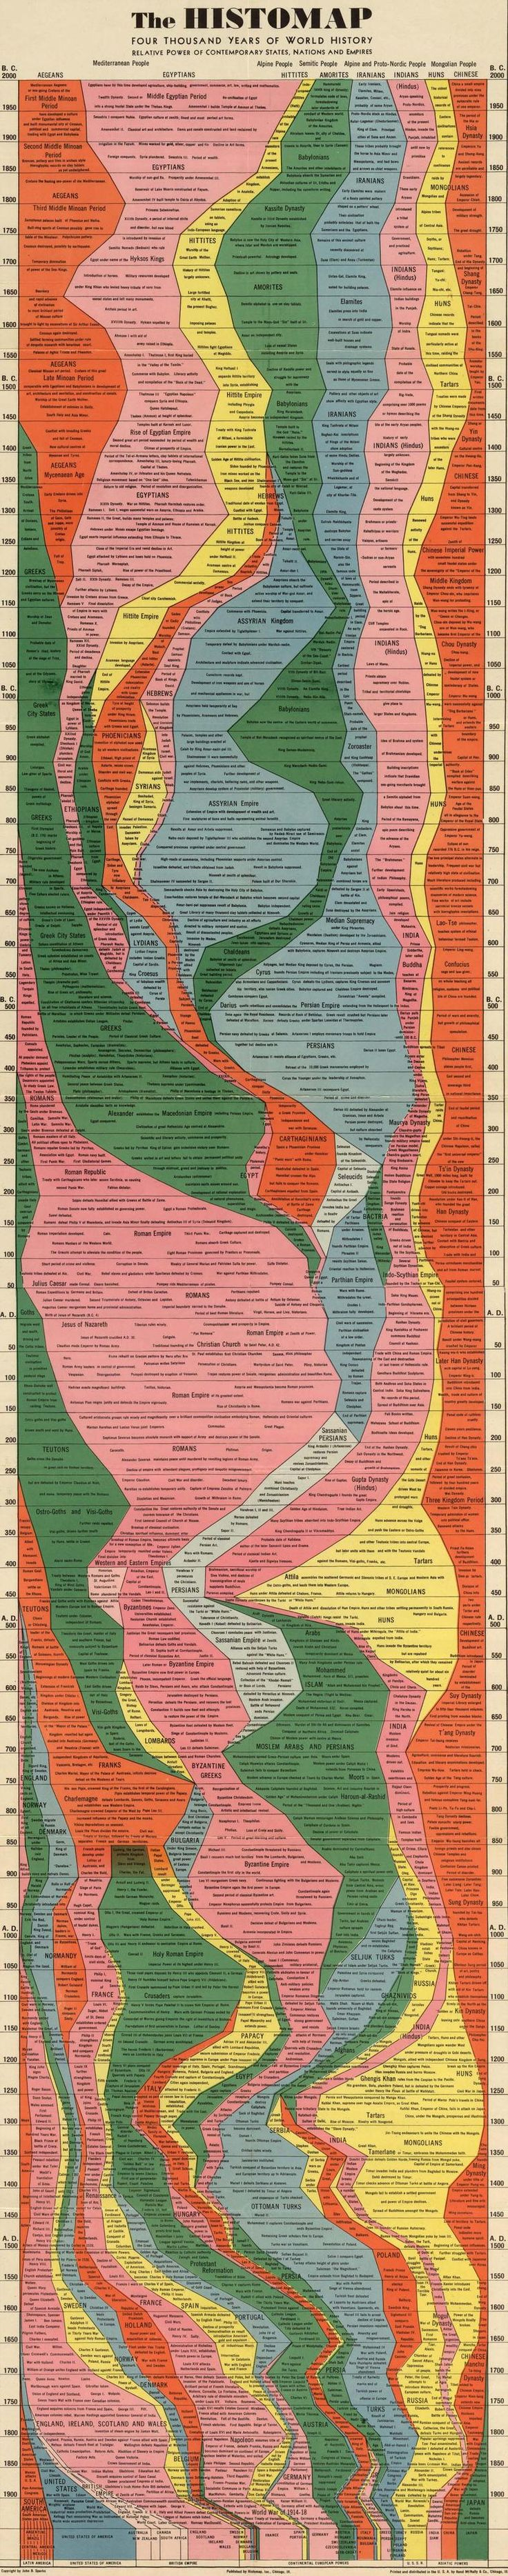 The HISTOMAP. 4000 years of history put in a map showing the rise and falls of empires! I saw a poster of this in a classroom at school today while supervising an exam.  We need one of these!